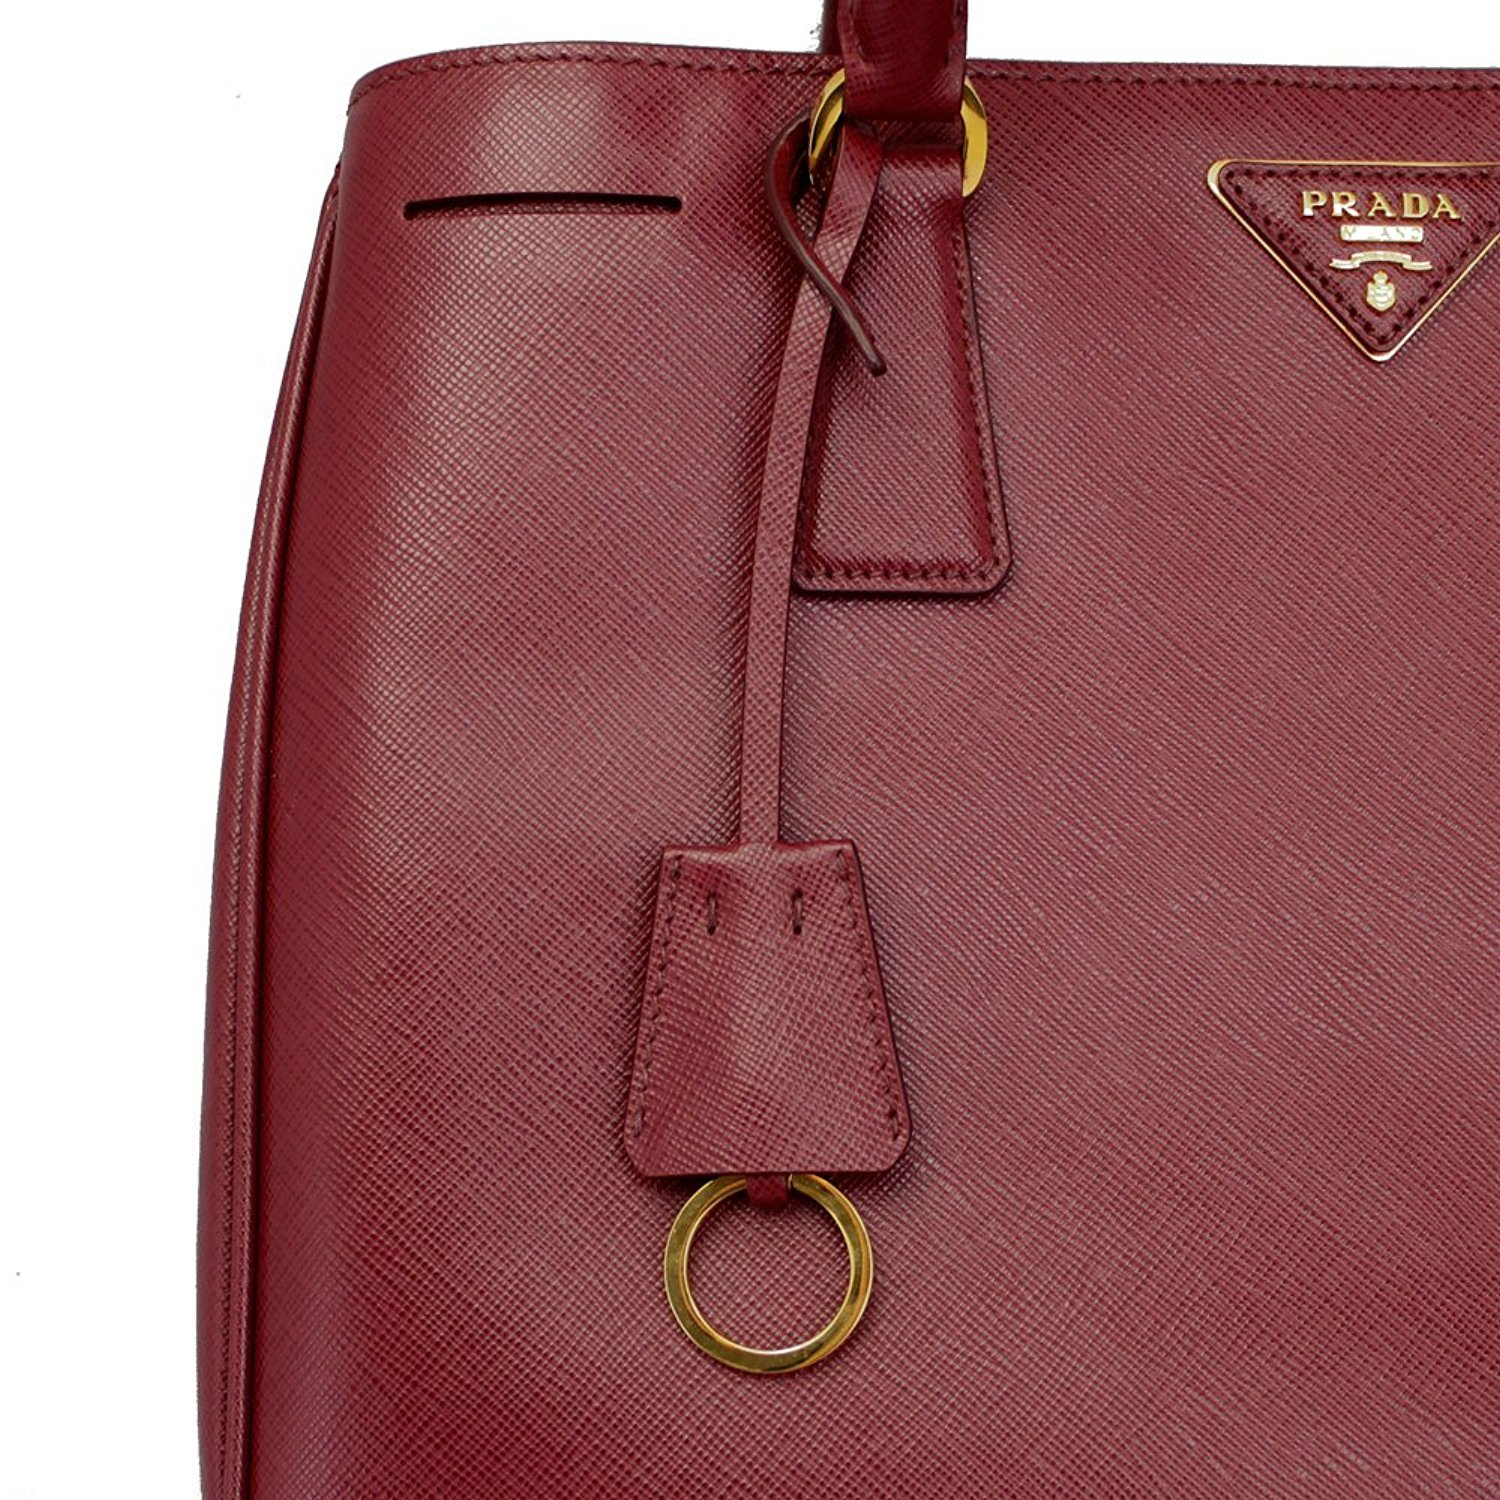 e7830fcfe473 Amazon.com: Prada Women's Red Leather Tote Bag With Strap BN1874 Cerise:  Clothing